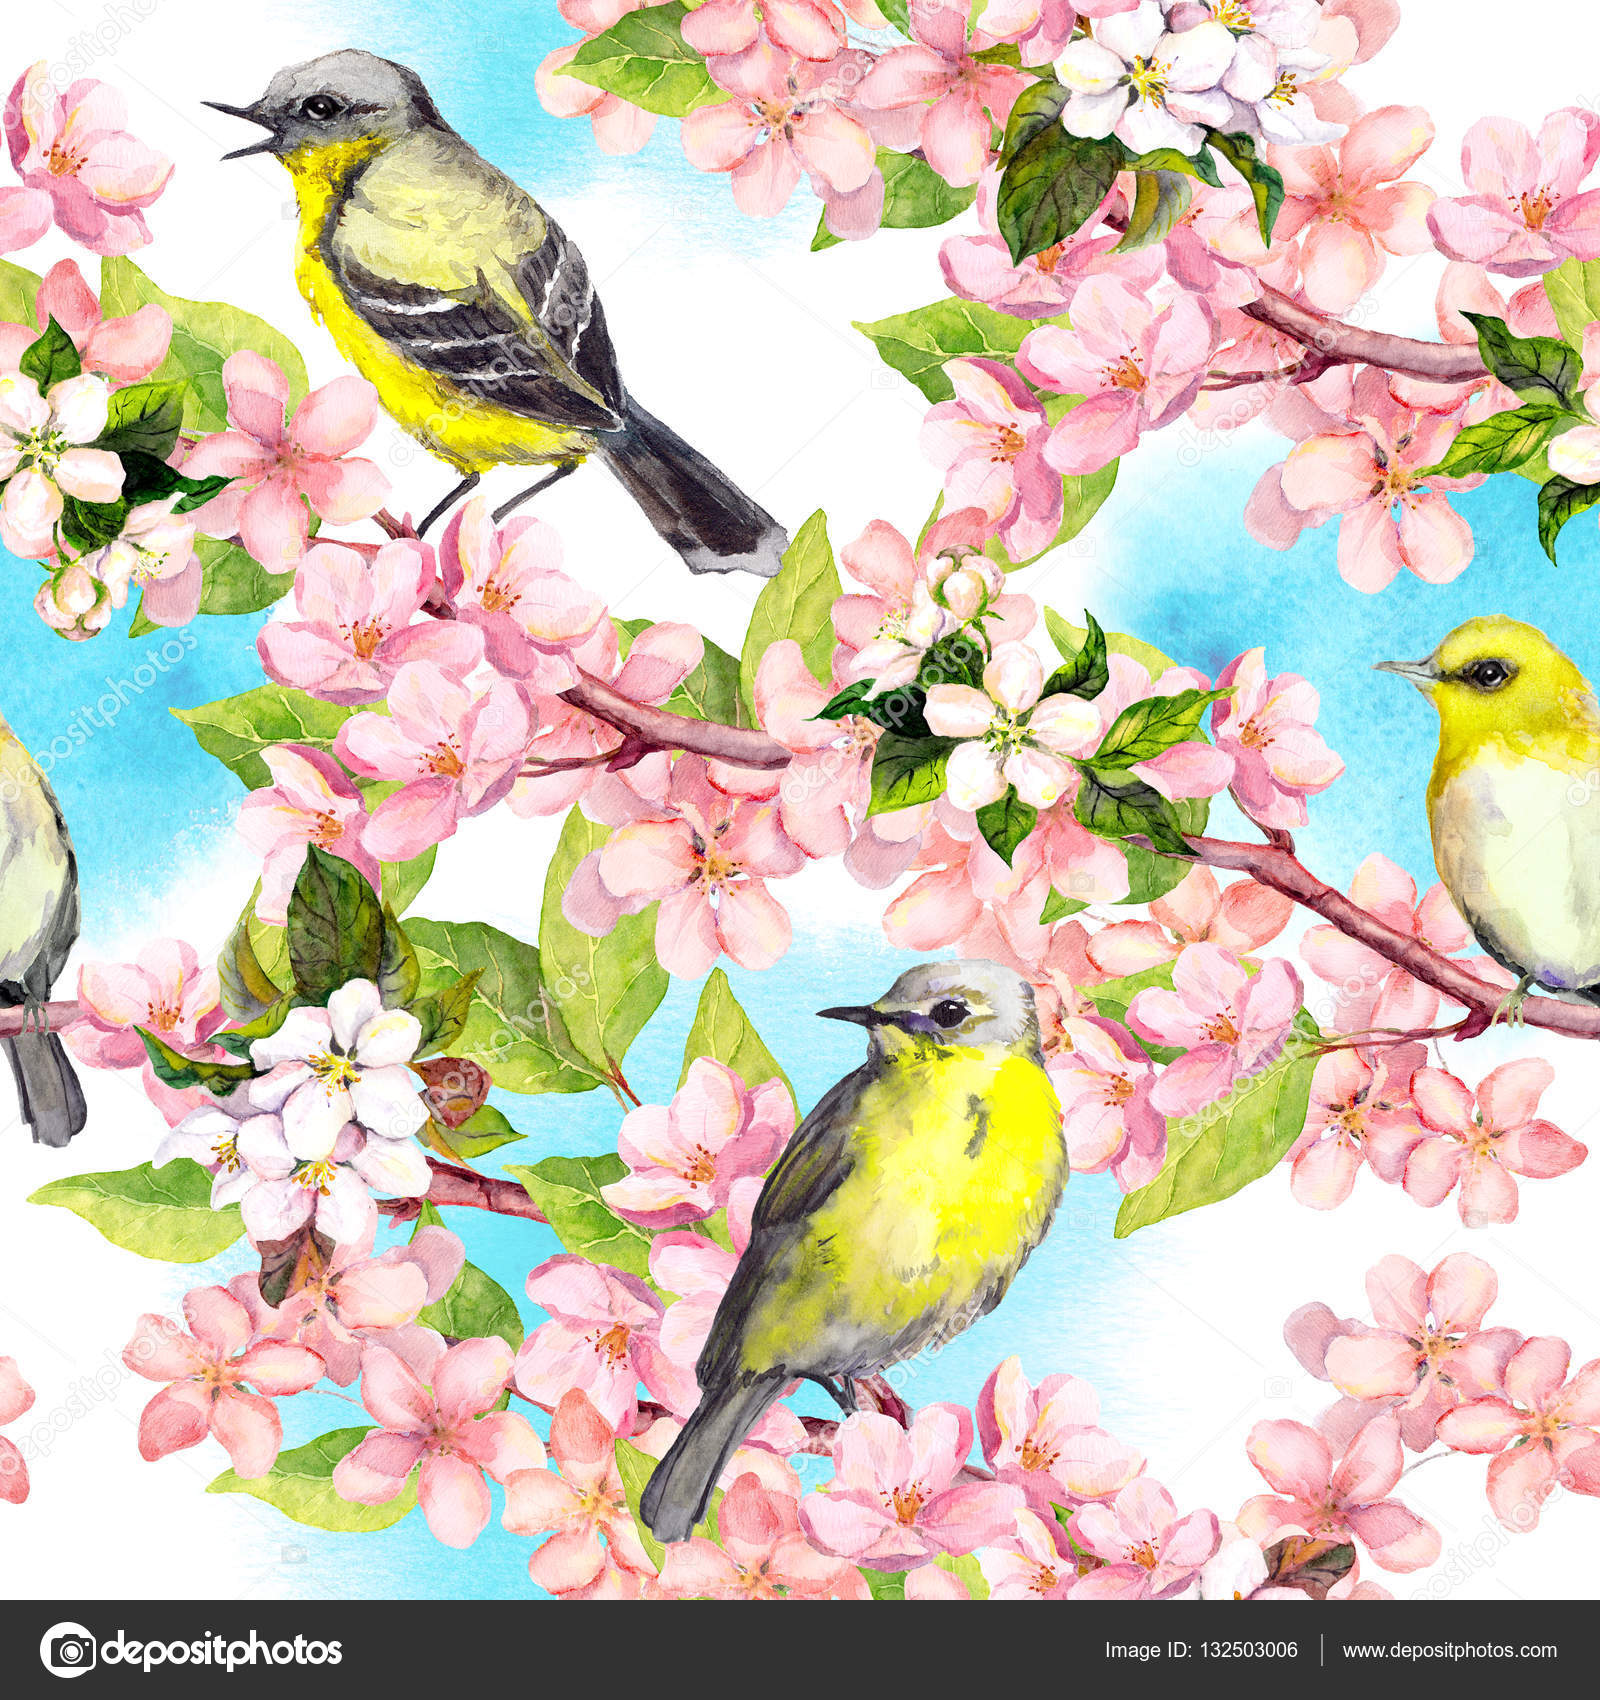 Spring Flowers Blossom Birds With Blue Sky Floral Seamless Pattern Vintage Watercolor